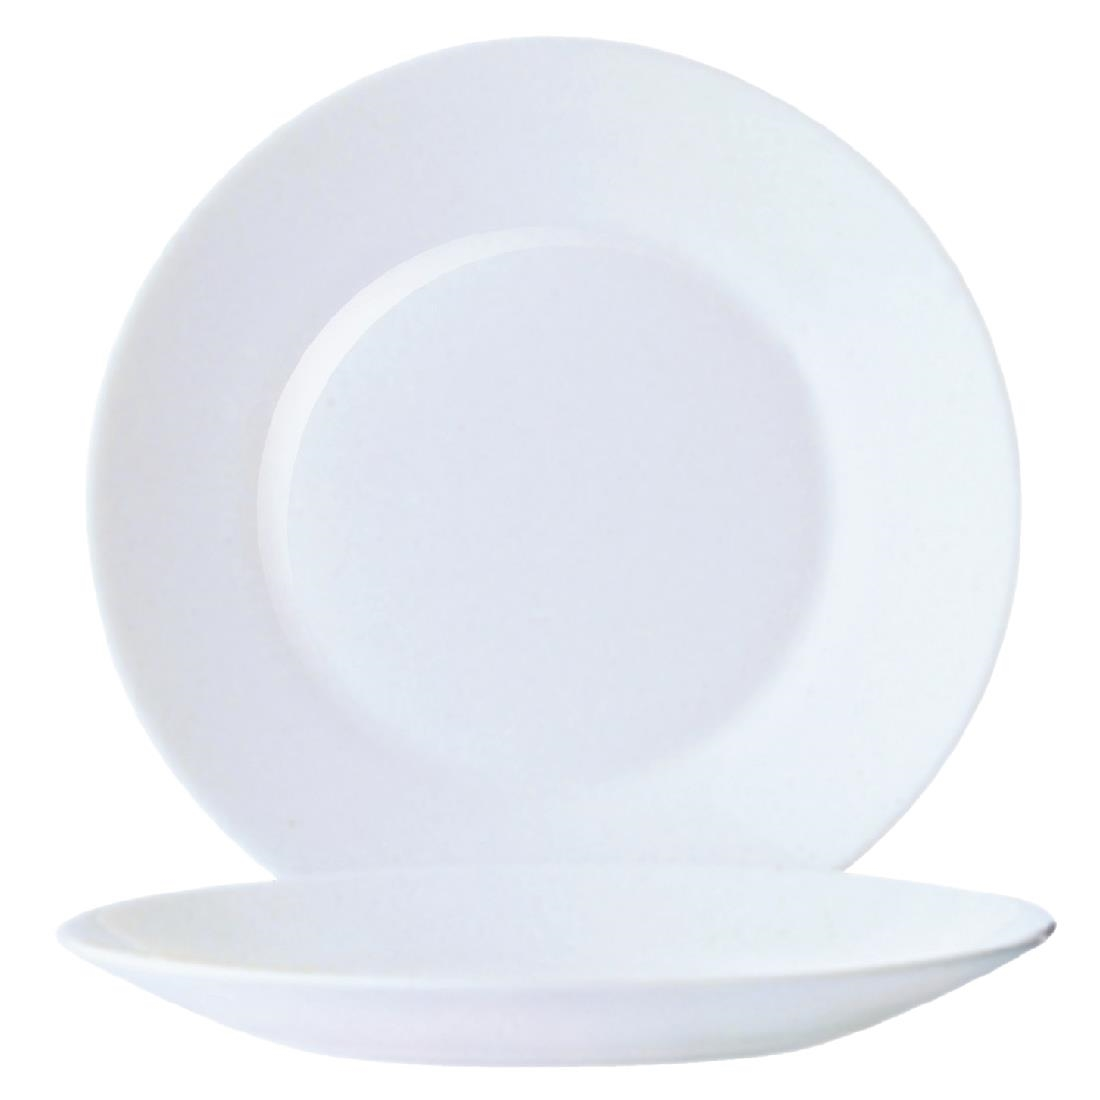 Image of Arcoroc Opal Restaurant Wide Rim Plates 155mm (Pack of 6) Pack of 6